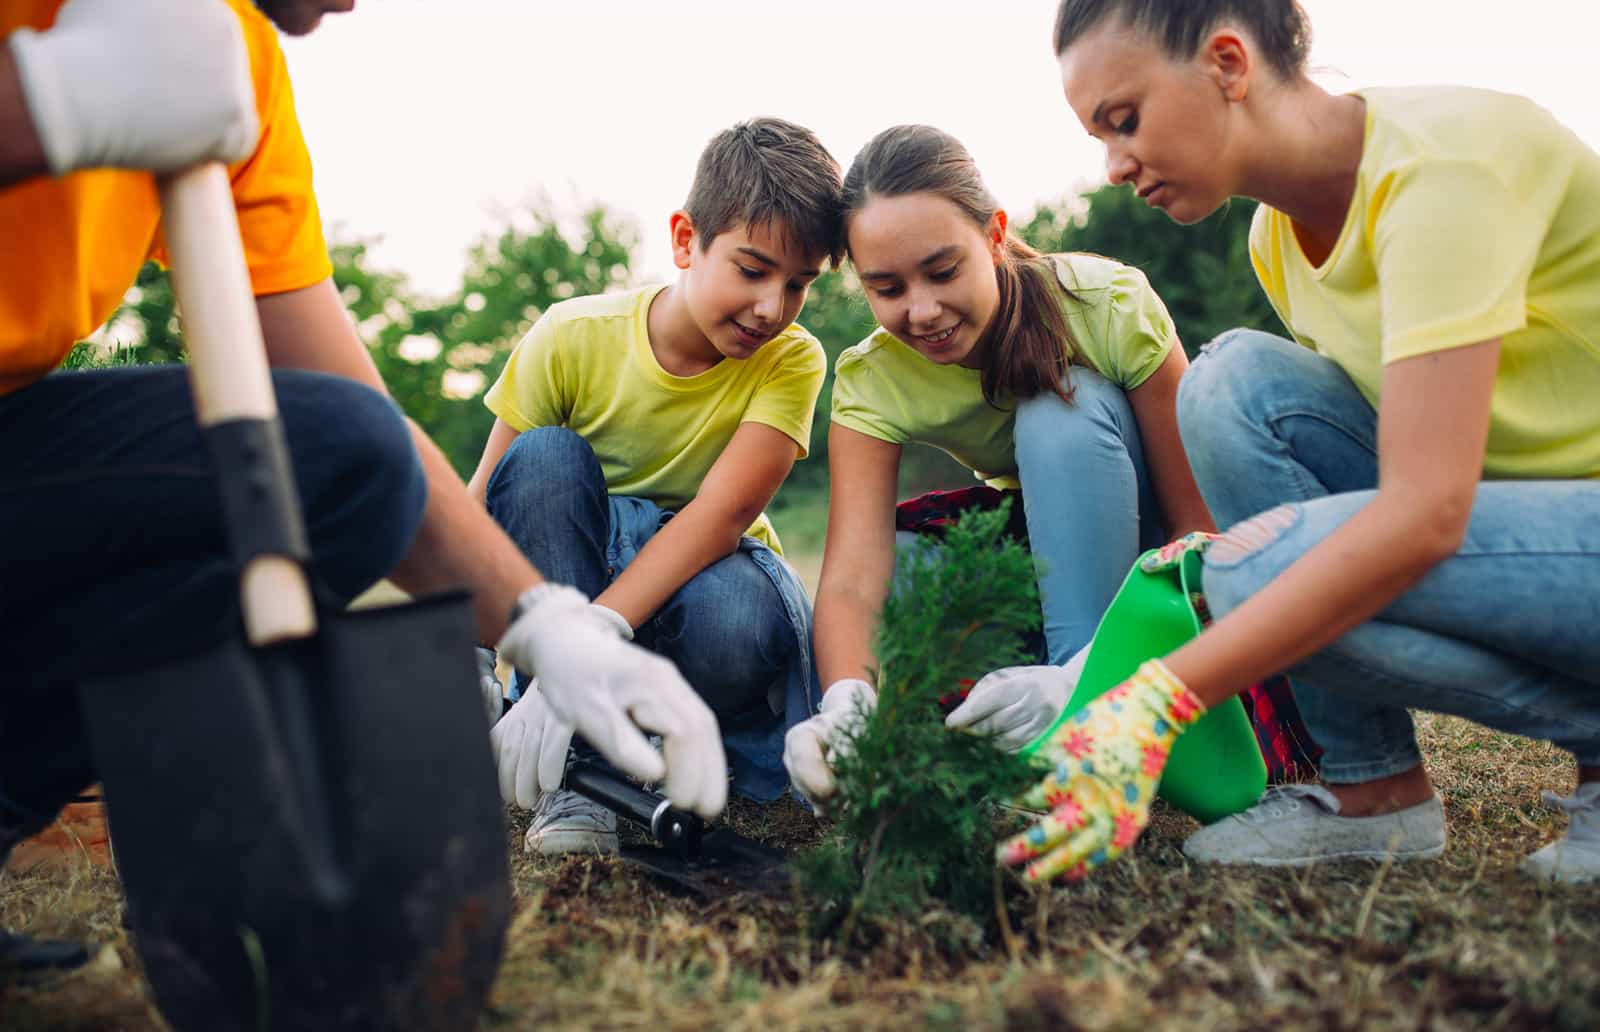 About-Community-iStock-834398248